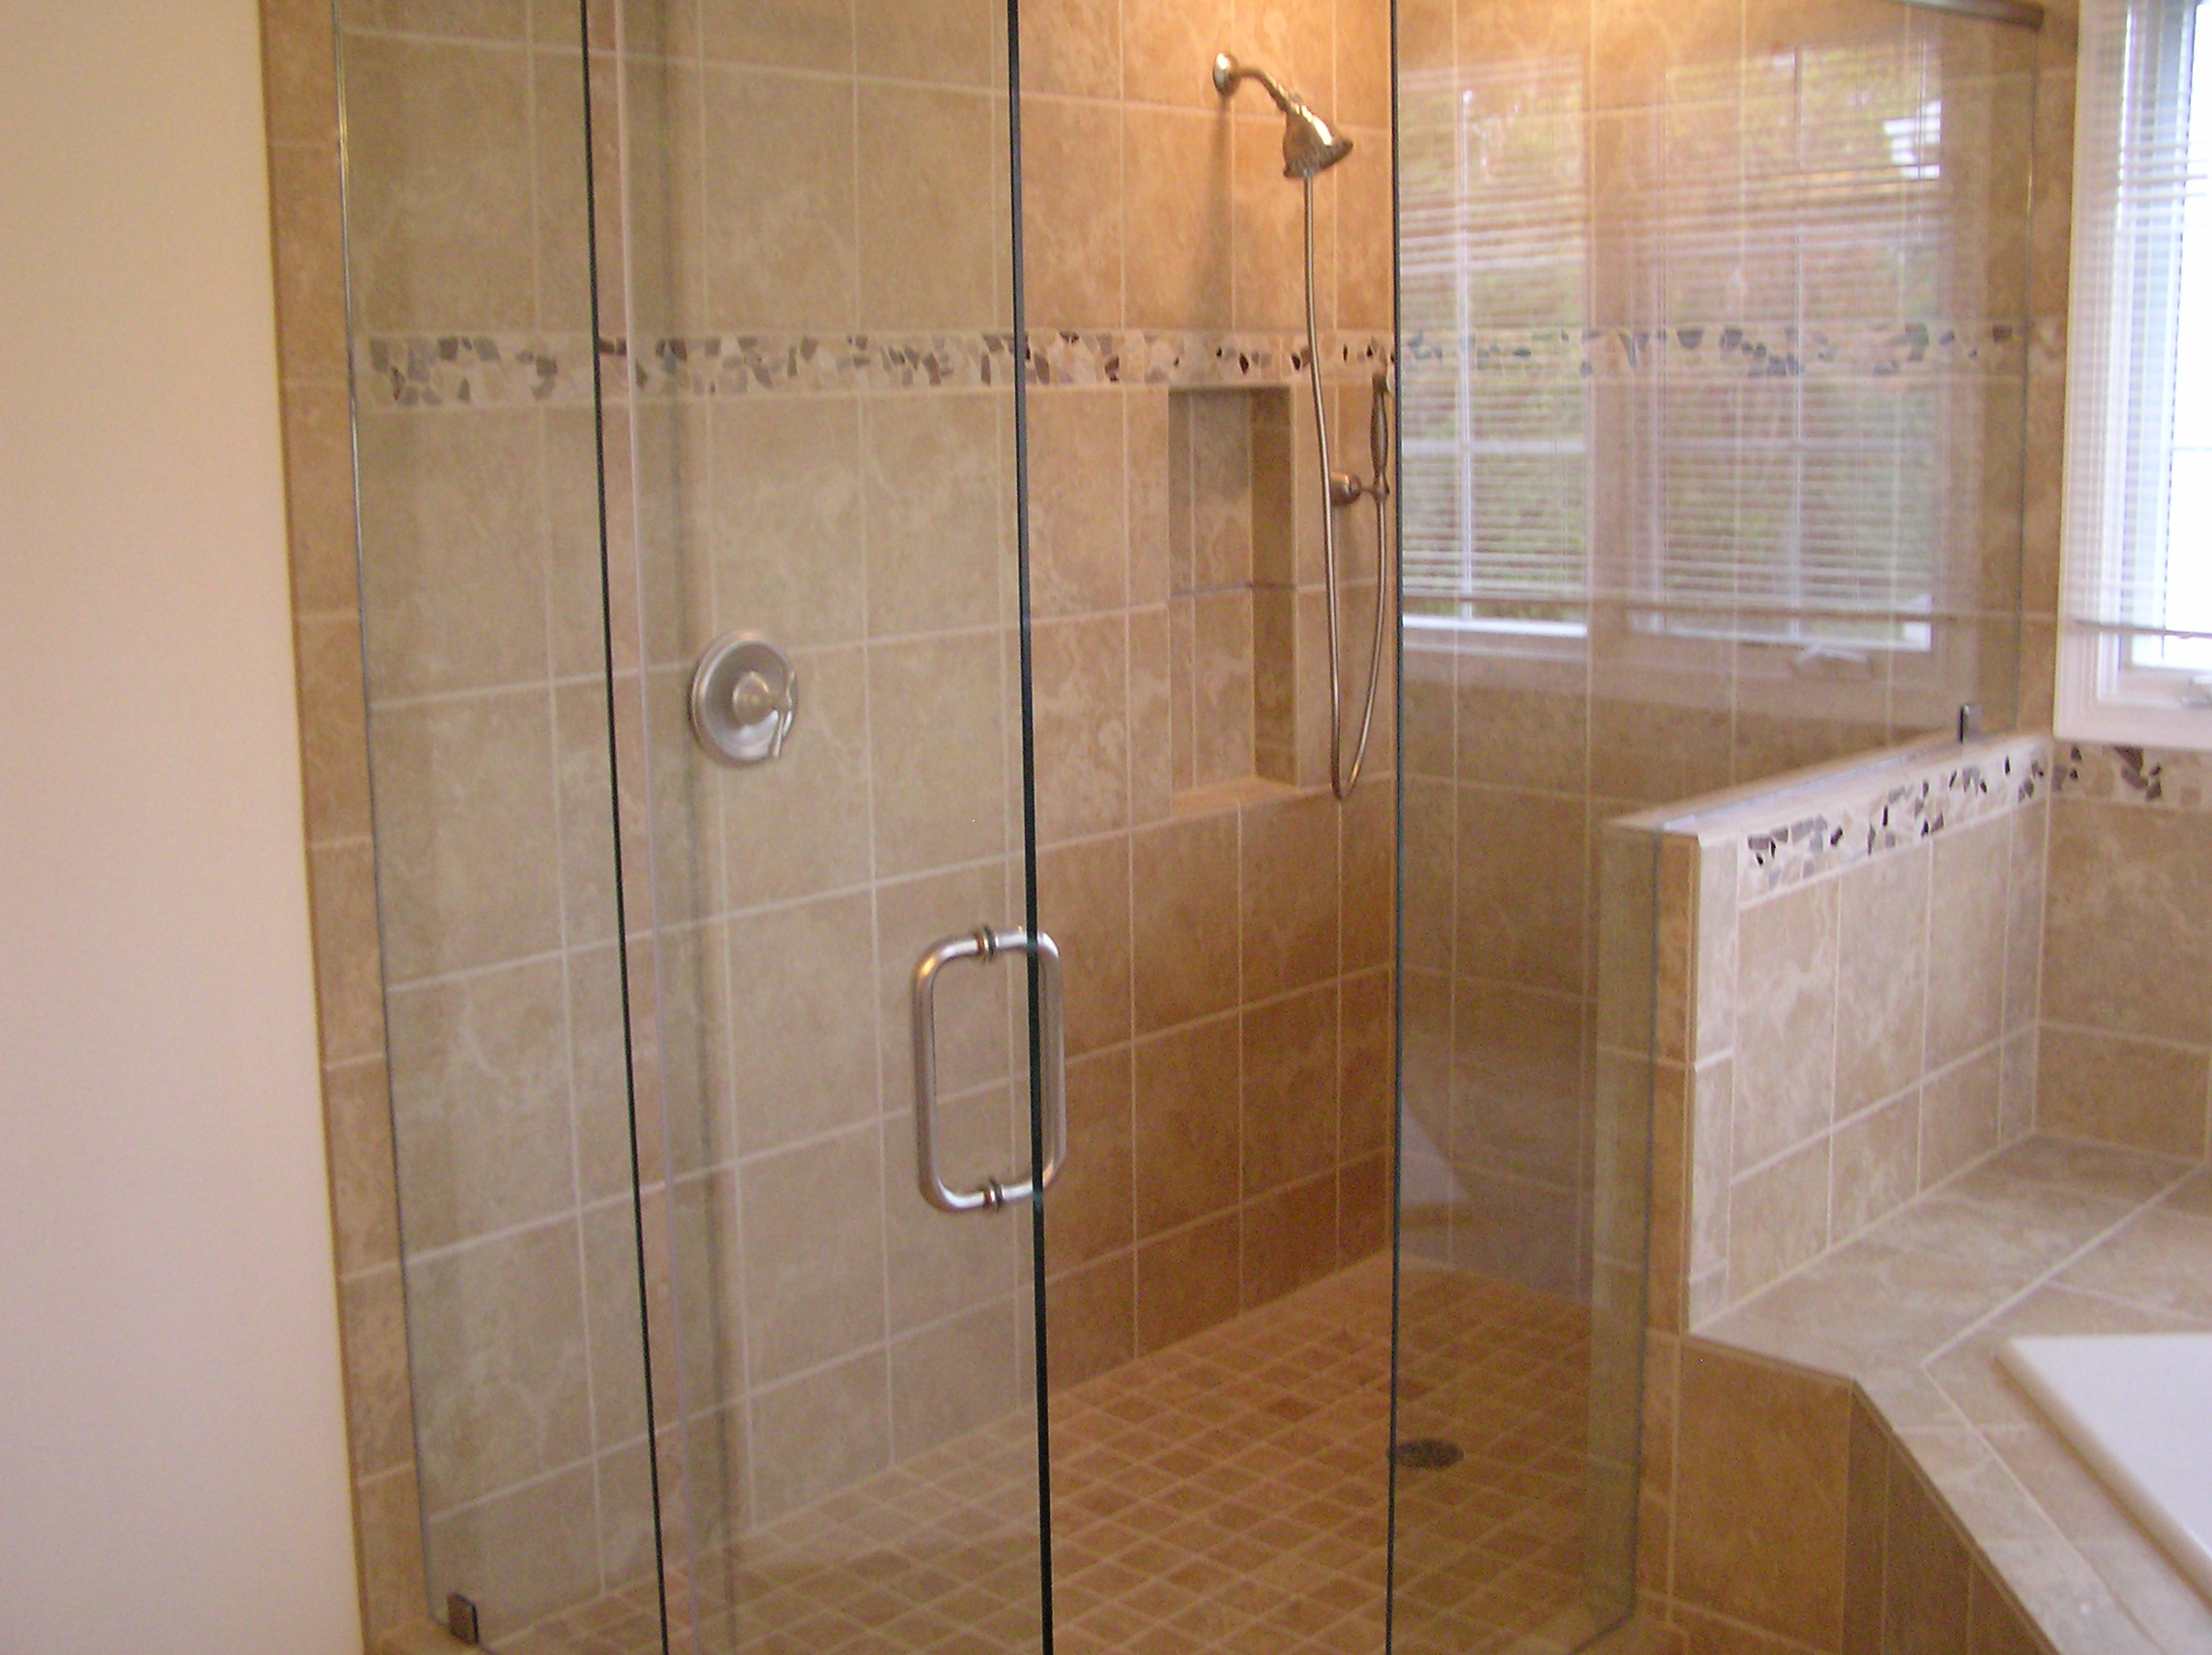 Bathroom remodel ideas homesfeed for Redesign bathroom ideas